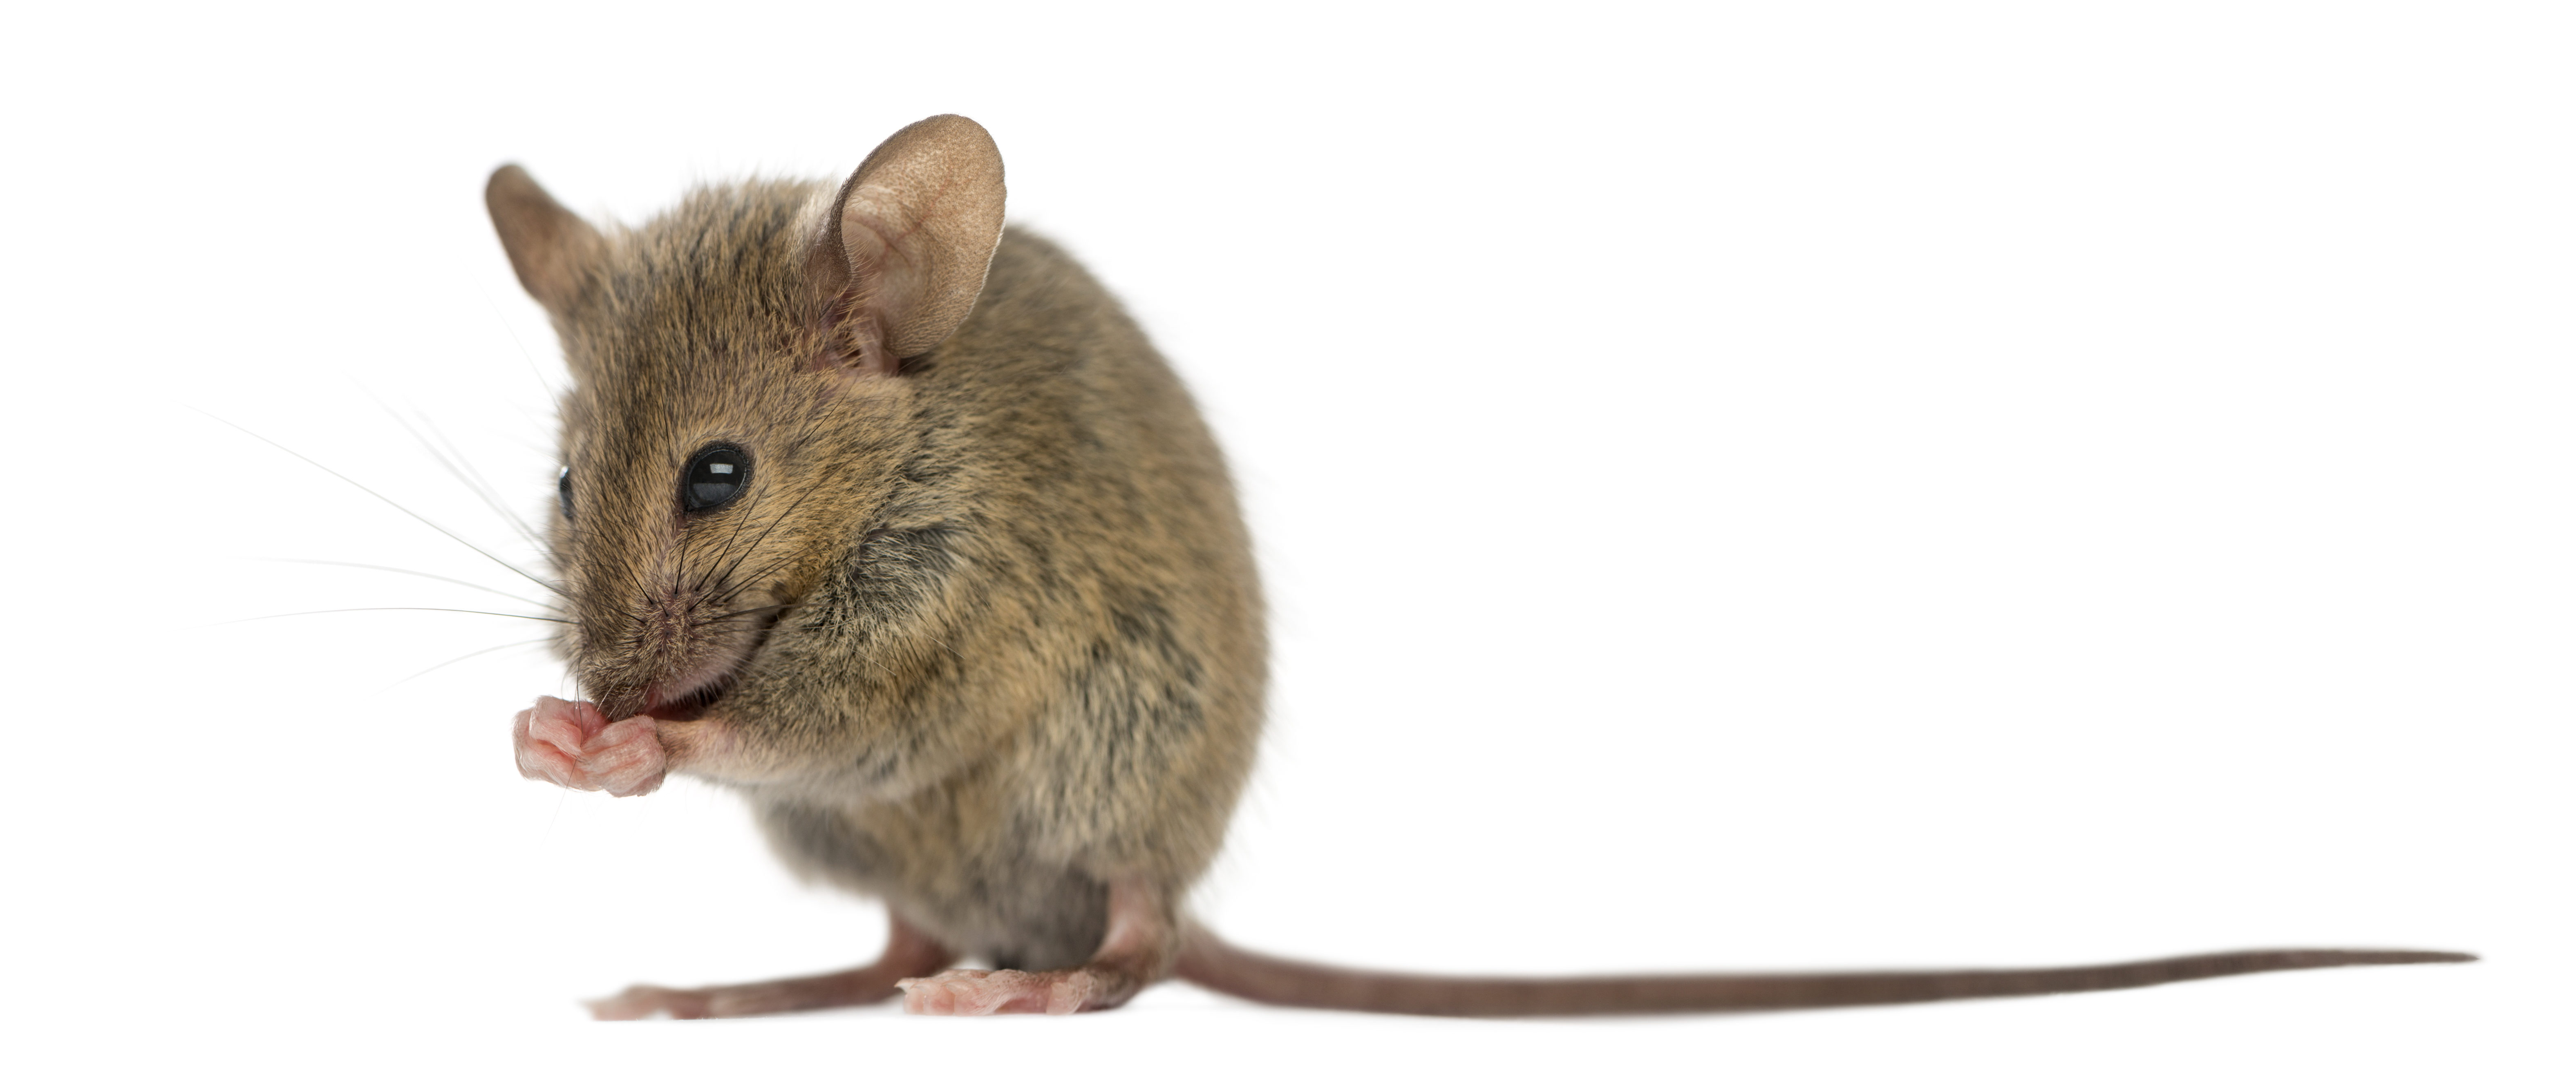 Mouse on white background (Shutterstock/ Eric Isselee)